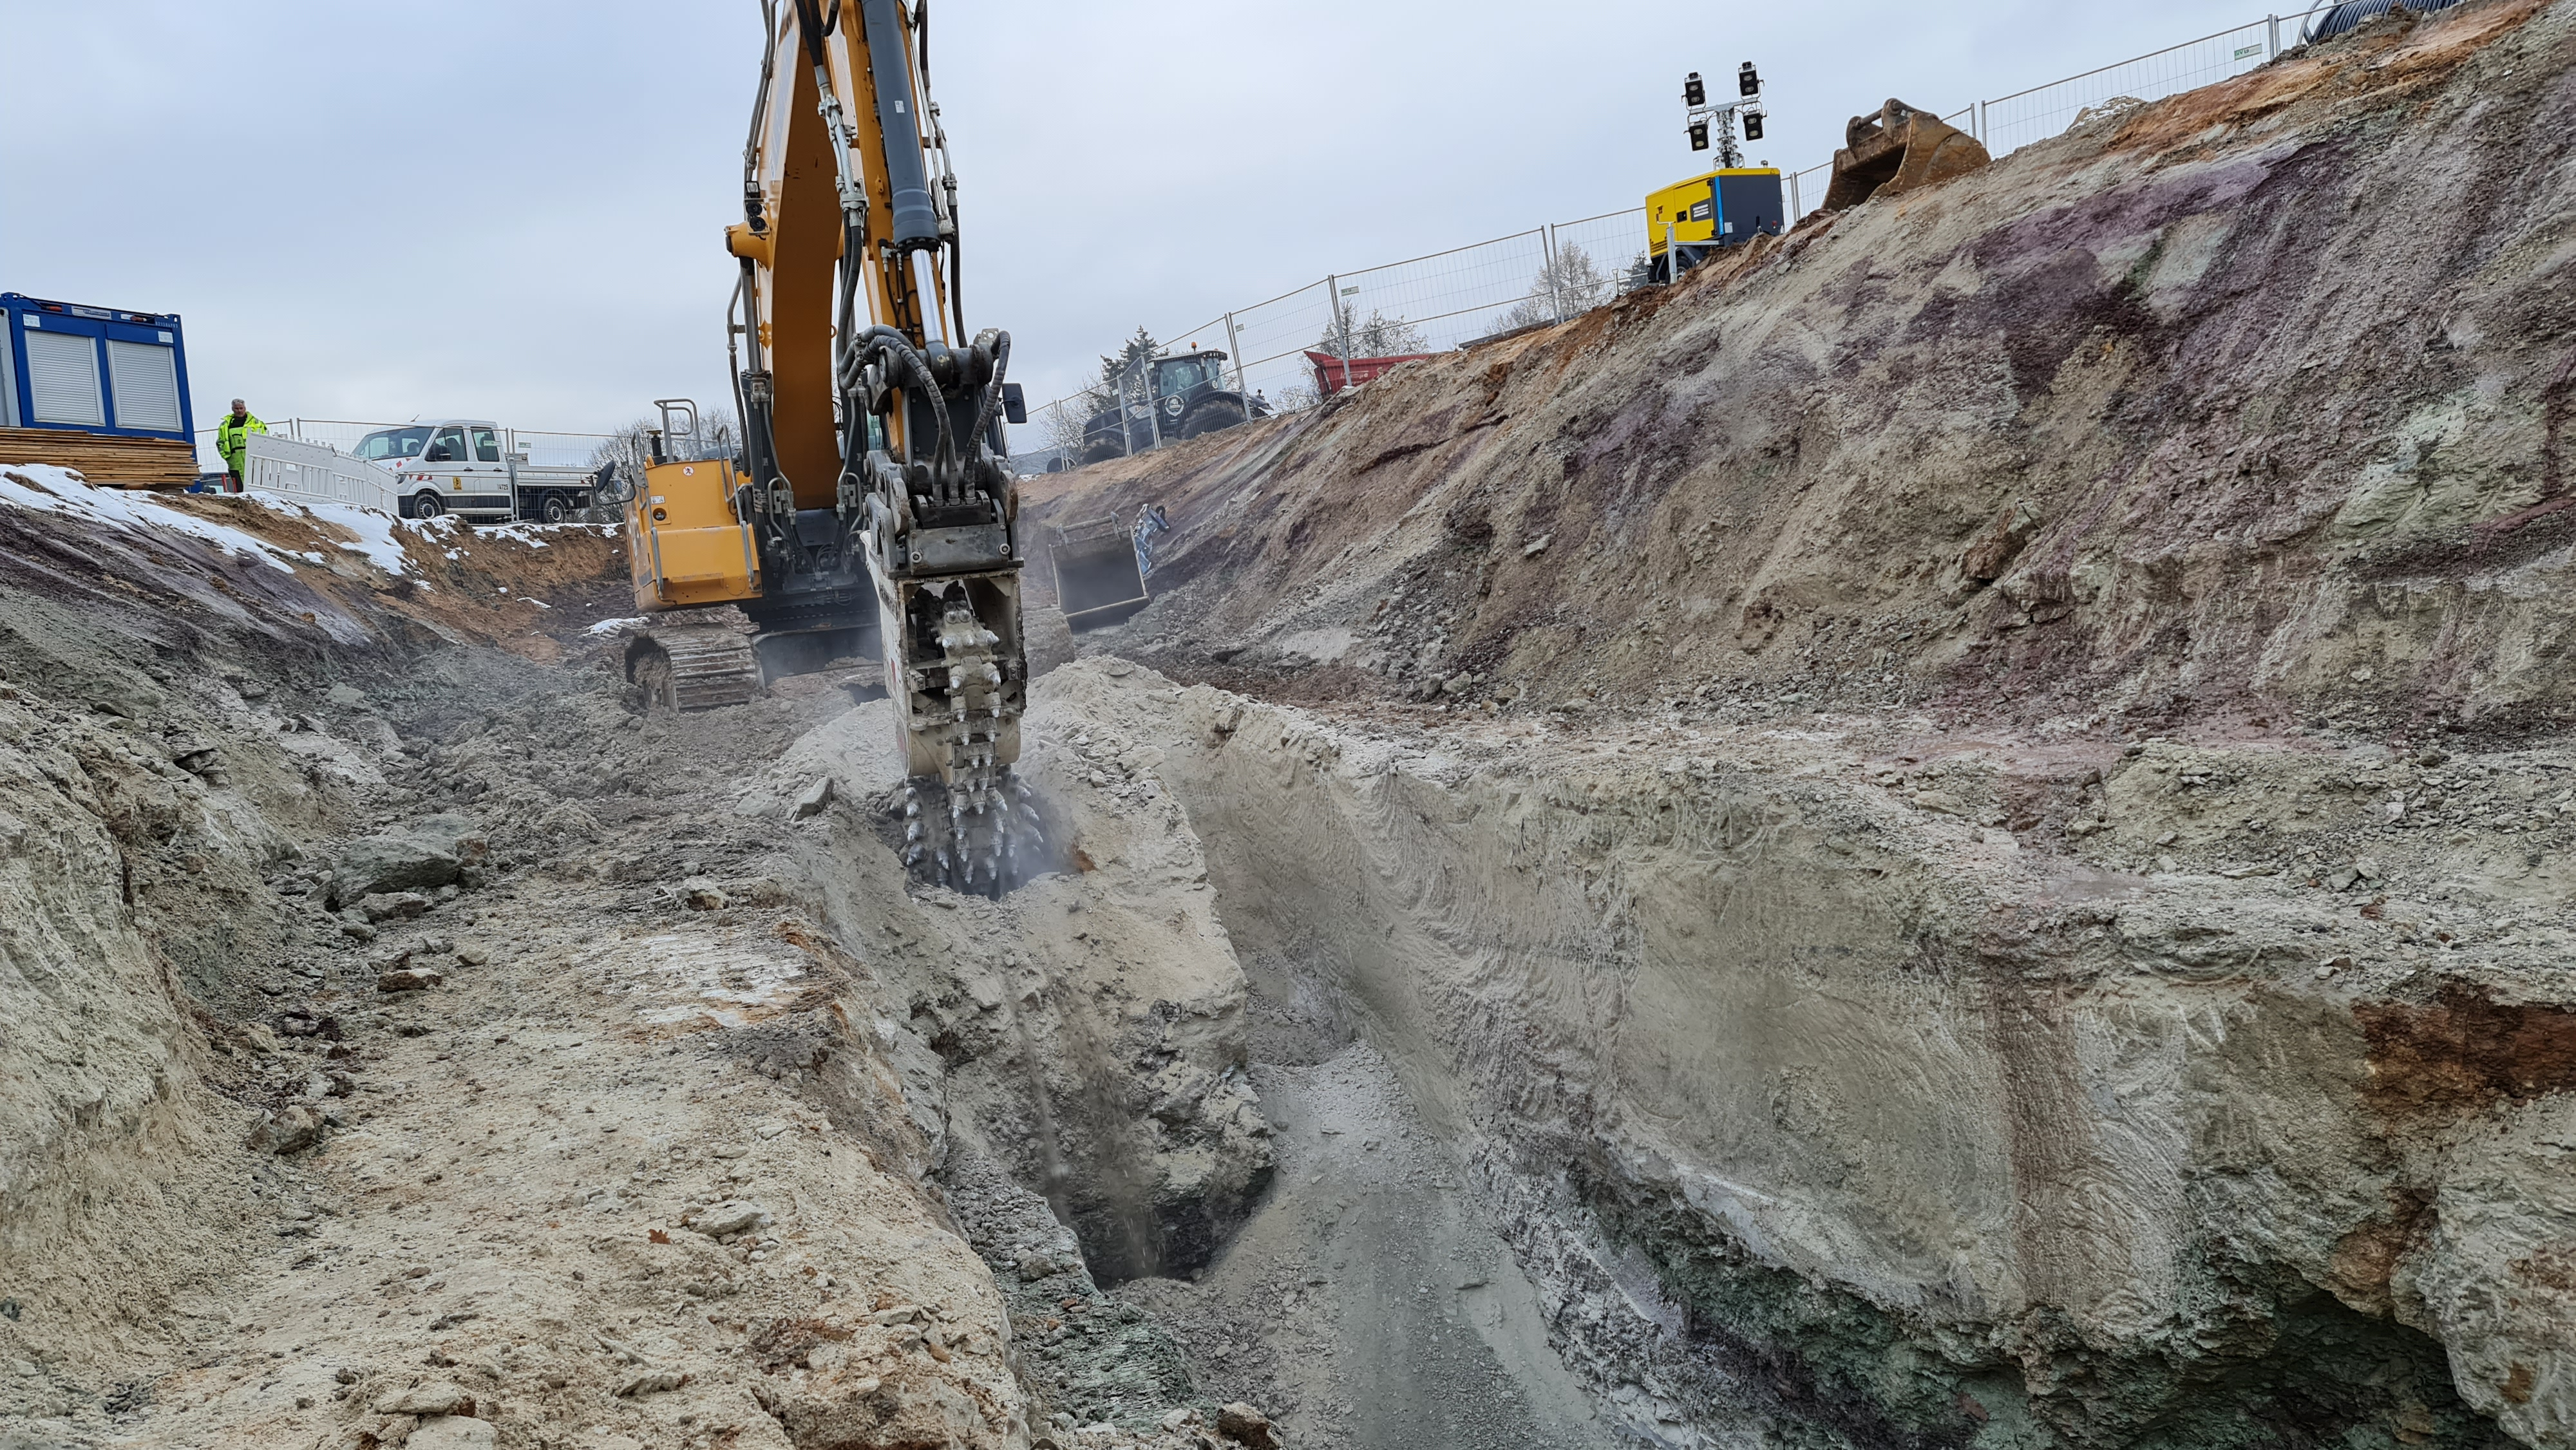 Civil engineering company BUNTE rented a 42-ton excavator with a KEMROC EK 150 chain cutter to excavate trenches in the bedrock.